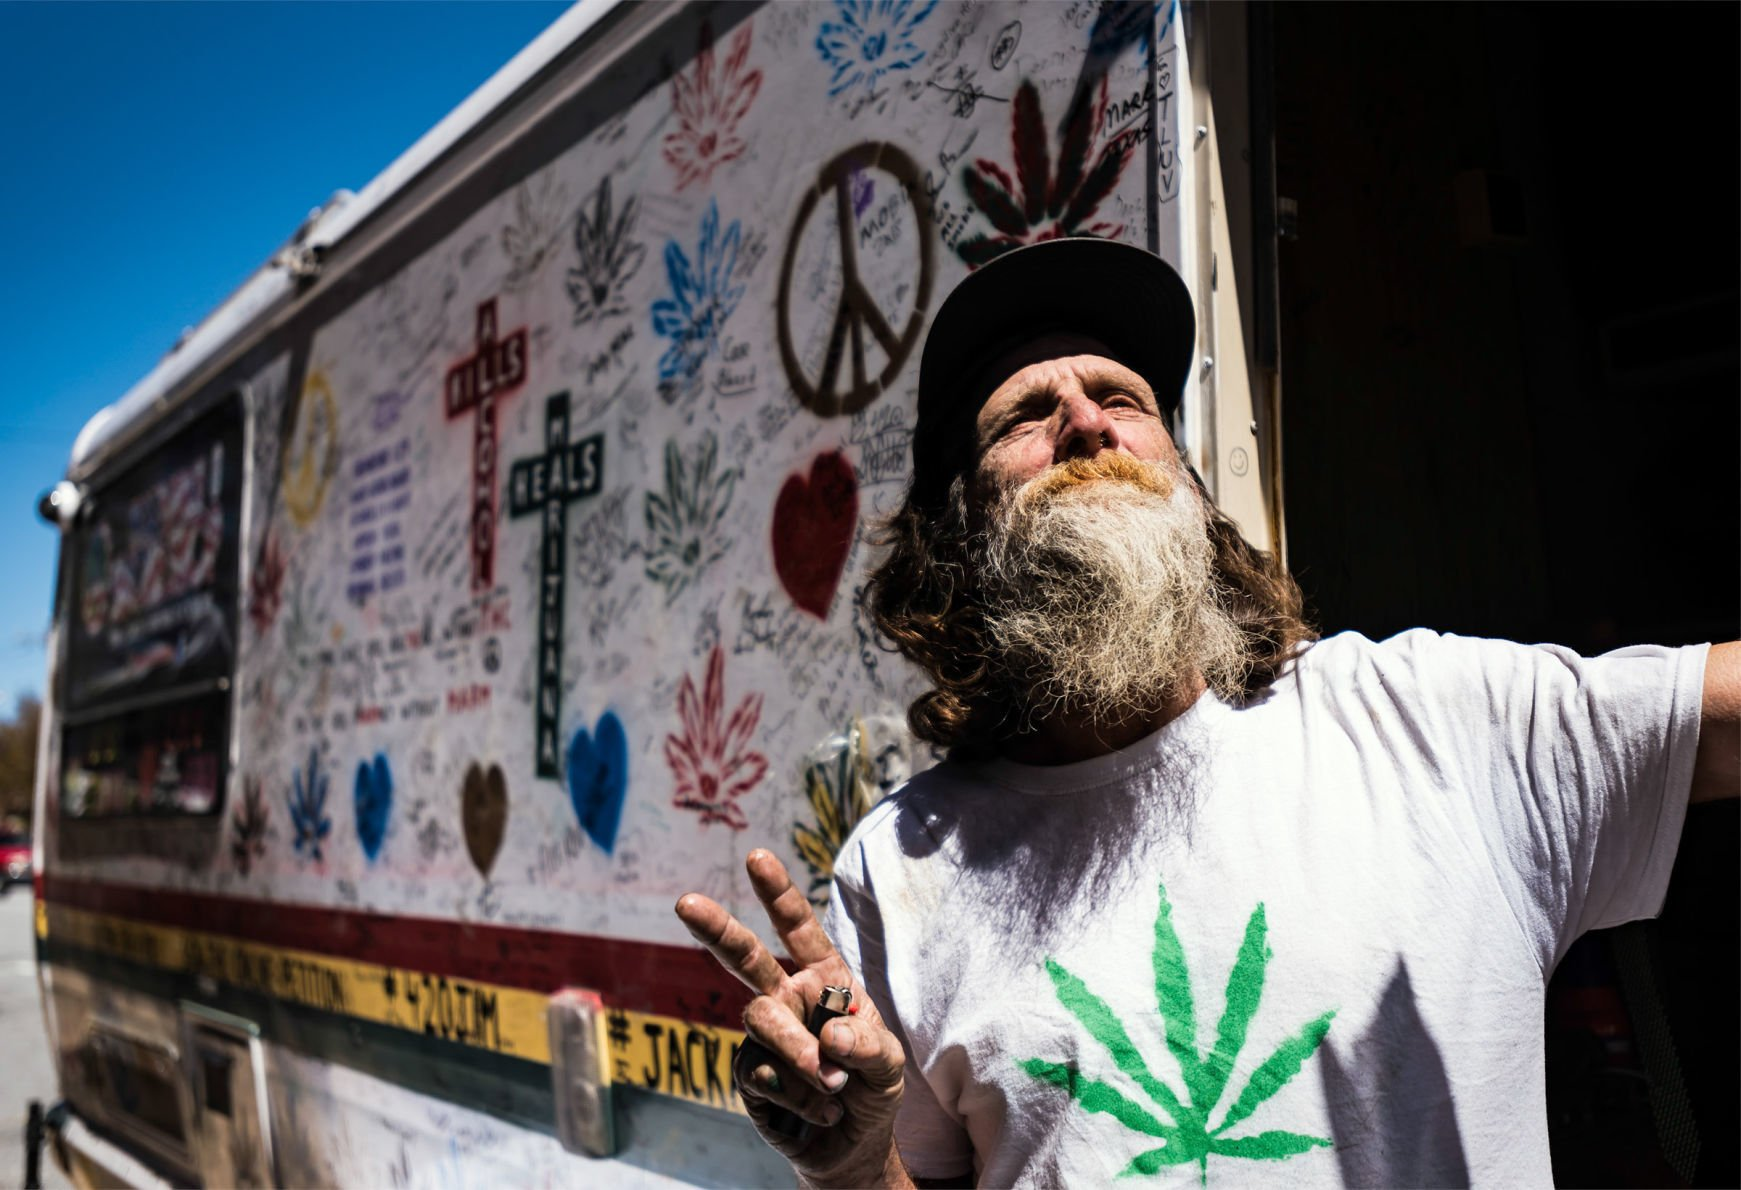 Marijuana advocate brings his Cannabus to Burke Street in Winston-Salem | Winston Salem Journal